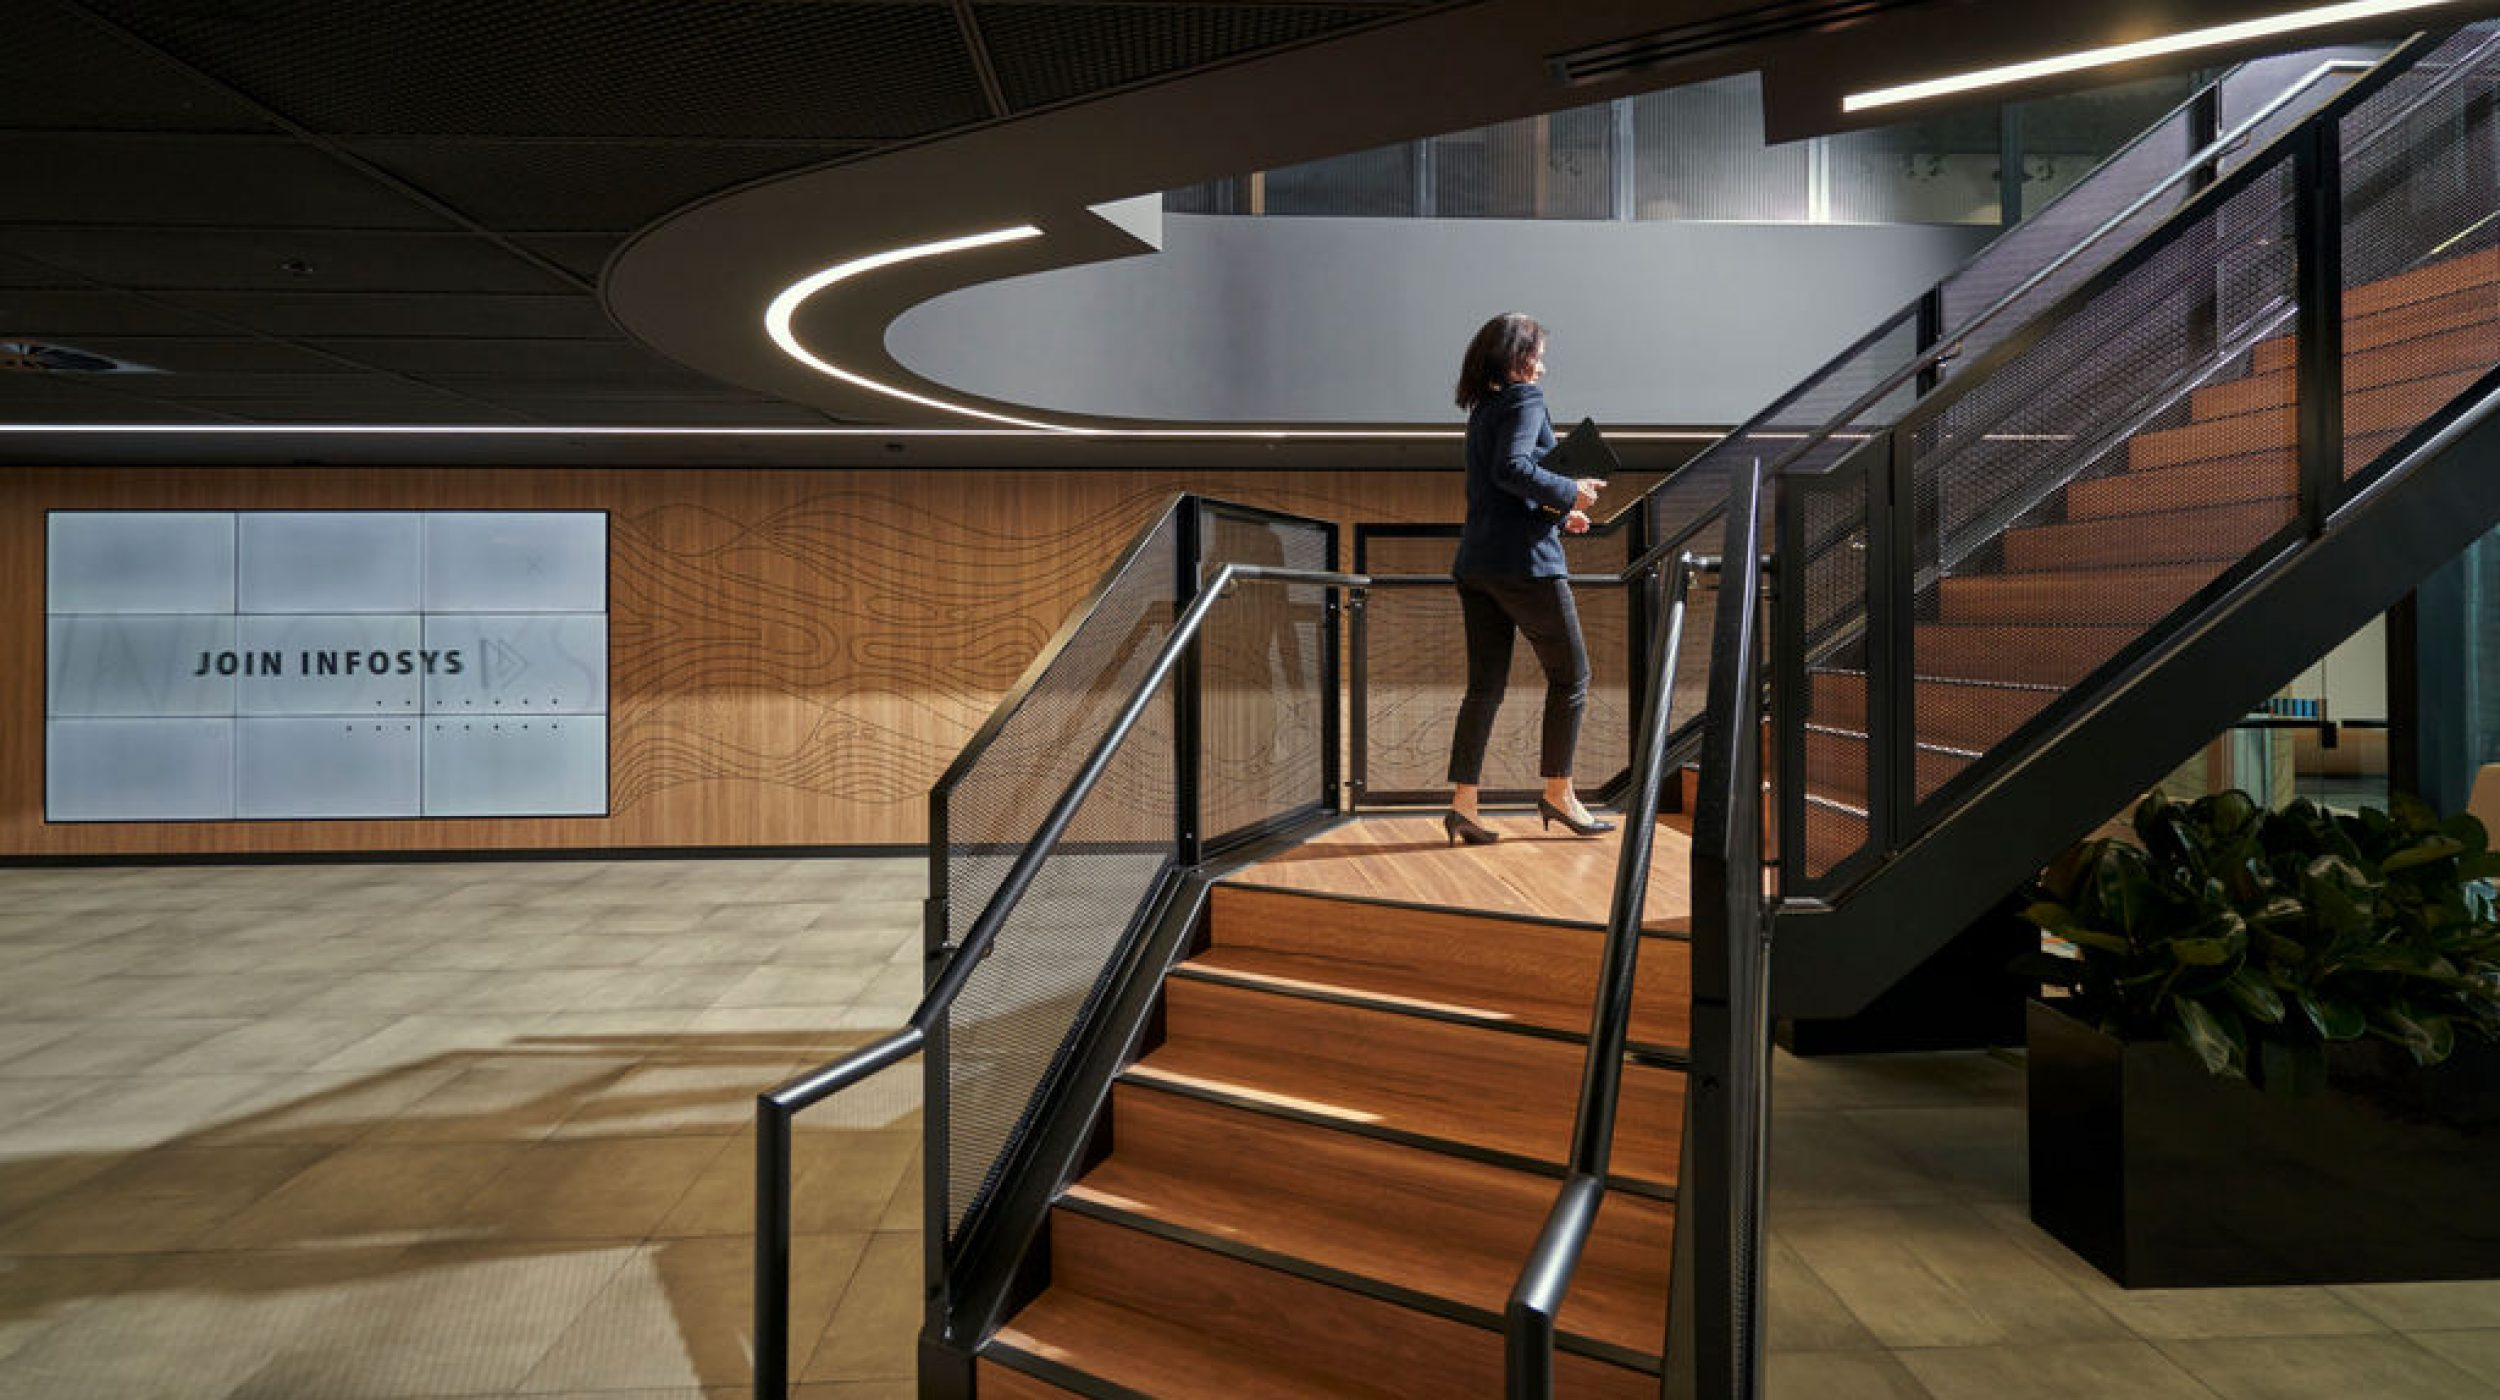 Infosys Melbourne | Active Metal | Steel Staircases 05